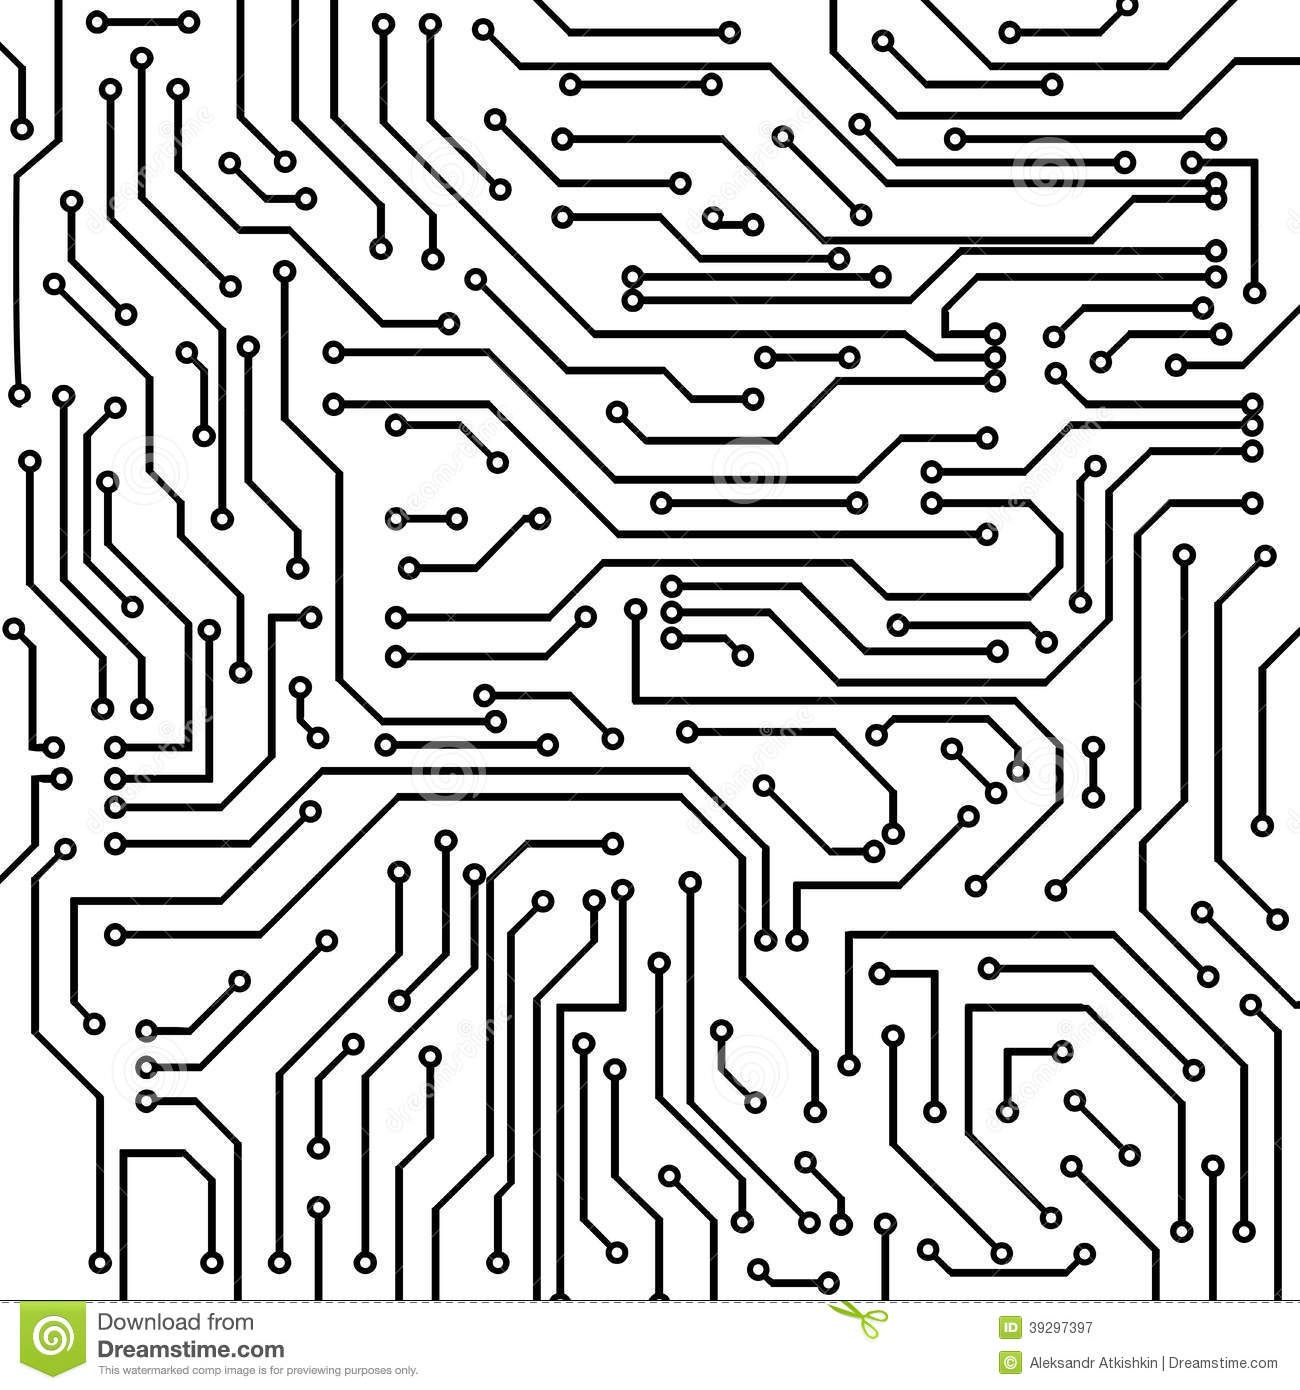 computer chip graphic google search circuit board design computer chip systems engineering  [ 1300 x 1390 Pixel ]